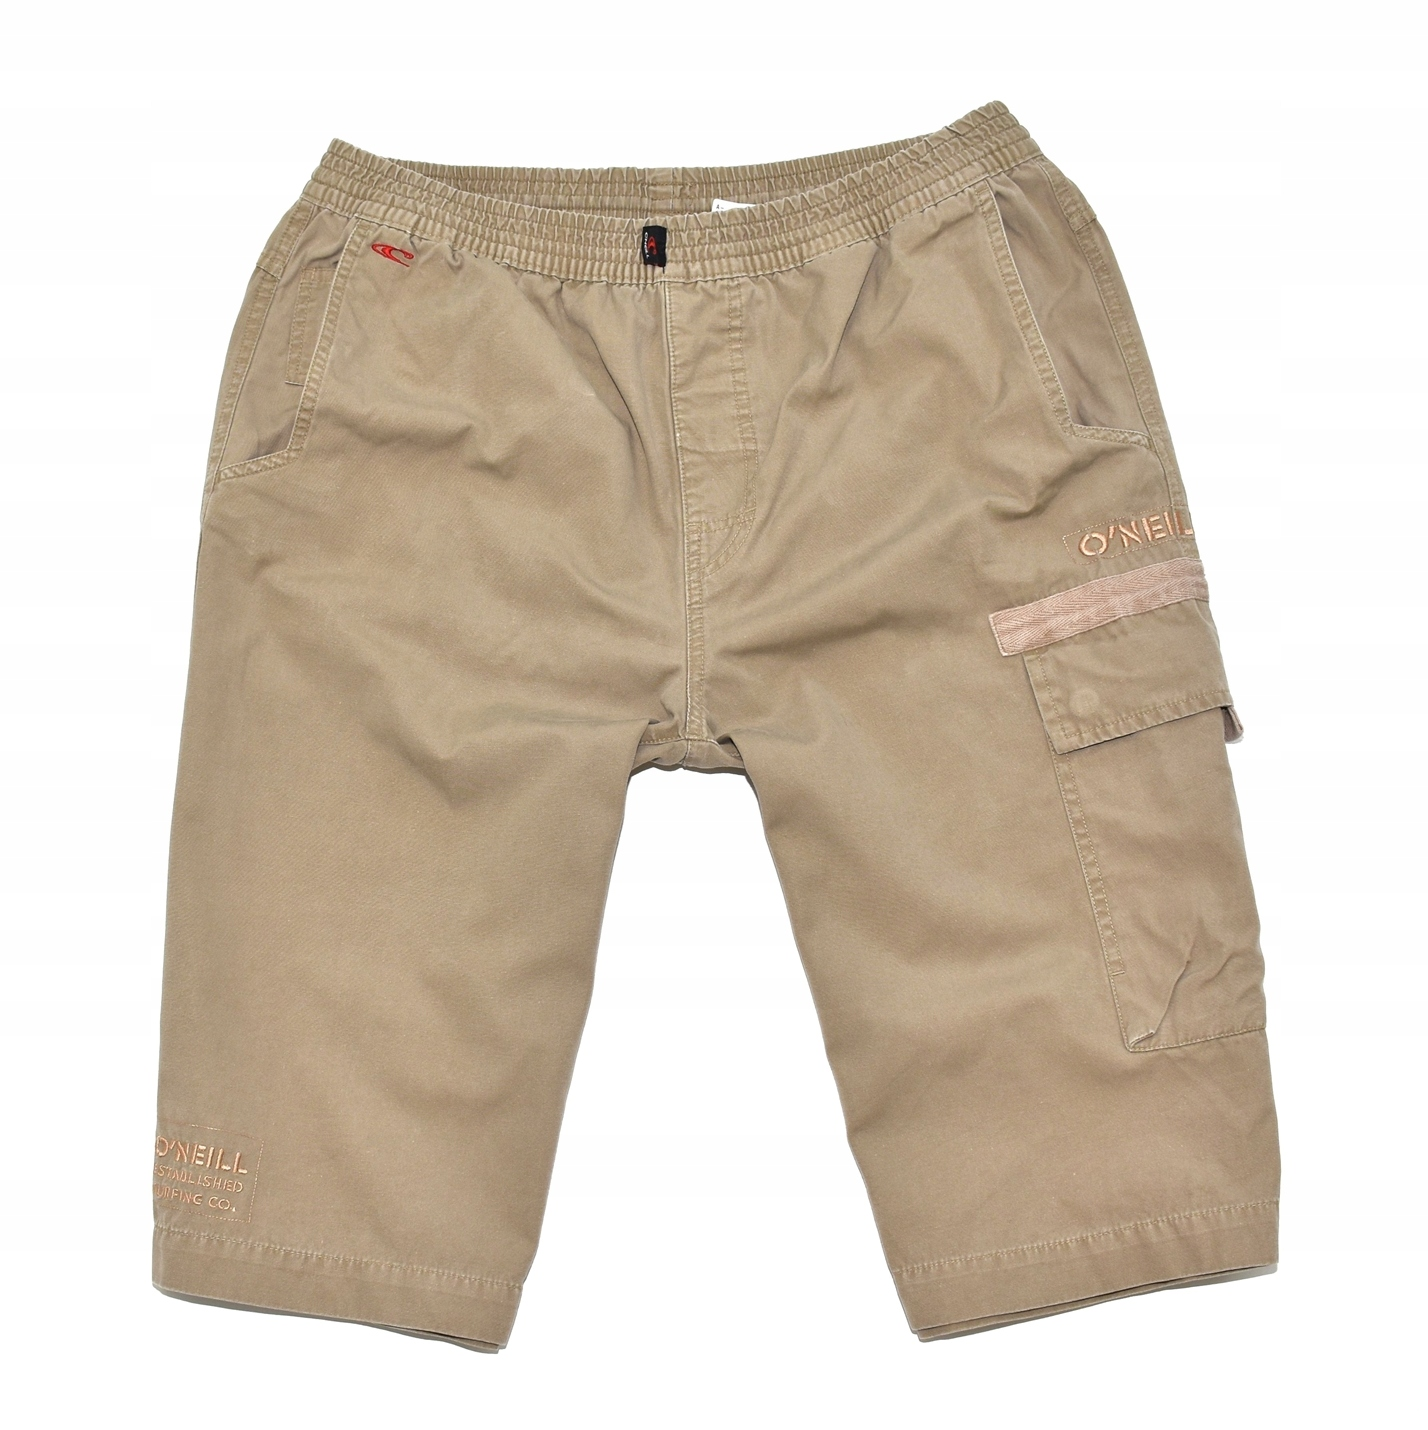 MM 154 ONEILL_ORYGINAL PERFORMANCE SURF SHORTS_L